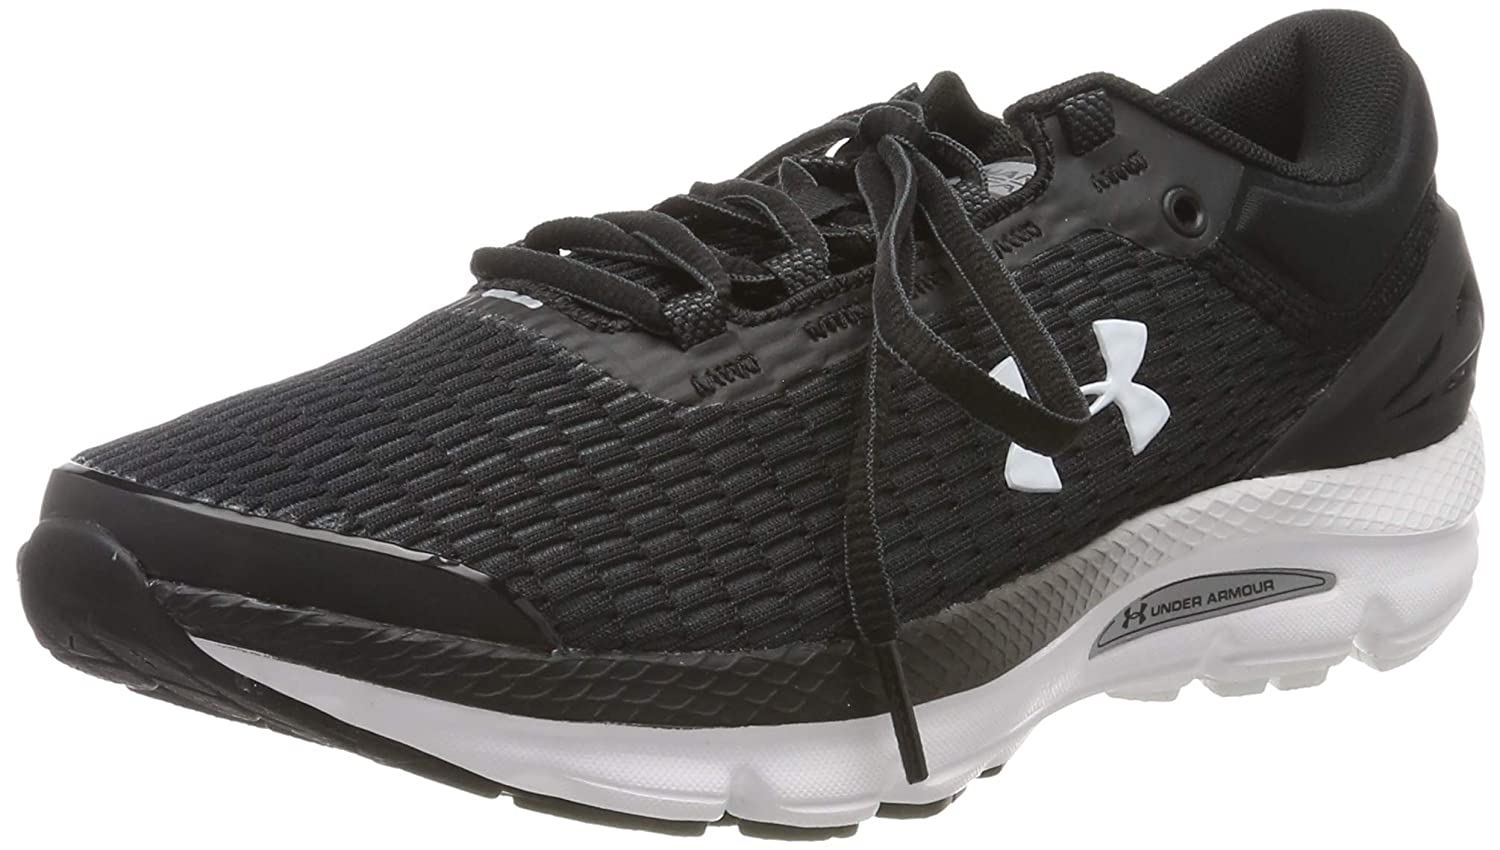 Zapatillas de Running para Mujer Under Armour Charged Intake 3